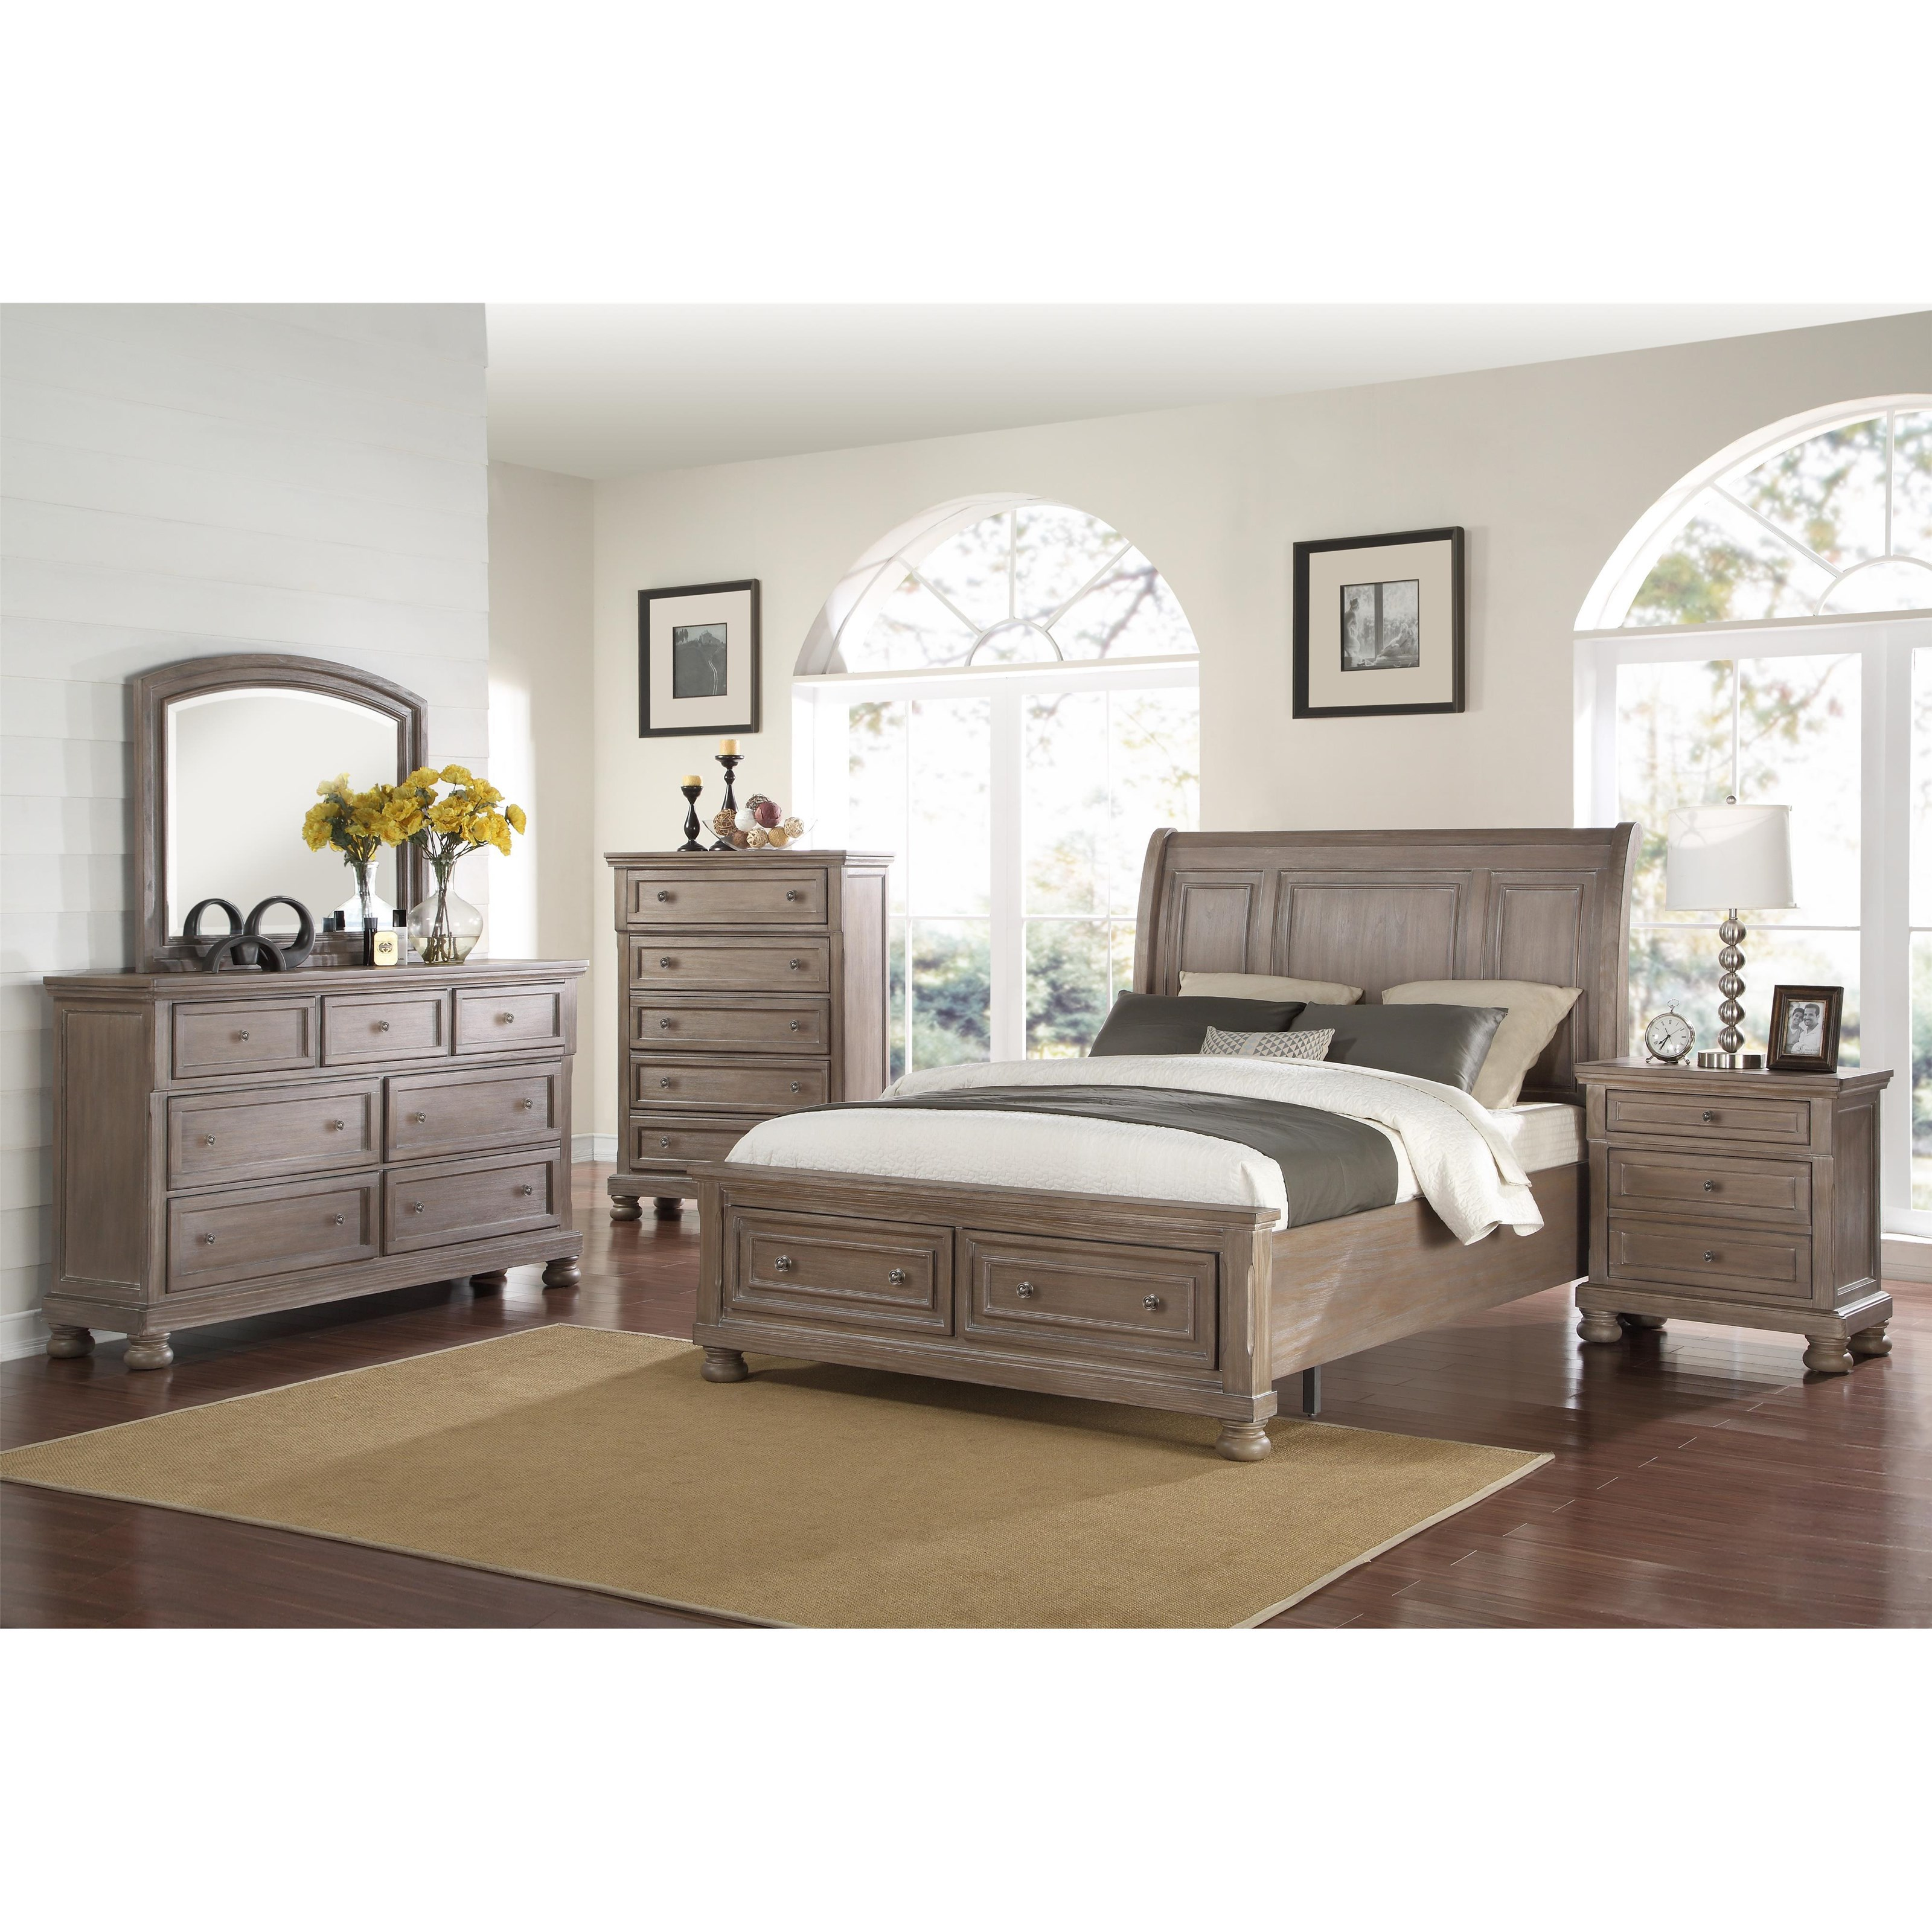 Allegra 3 Piece Bedroom Set by New Classic at Darvin Furniture